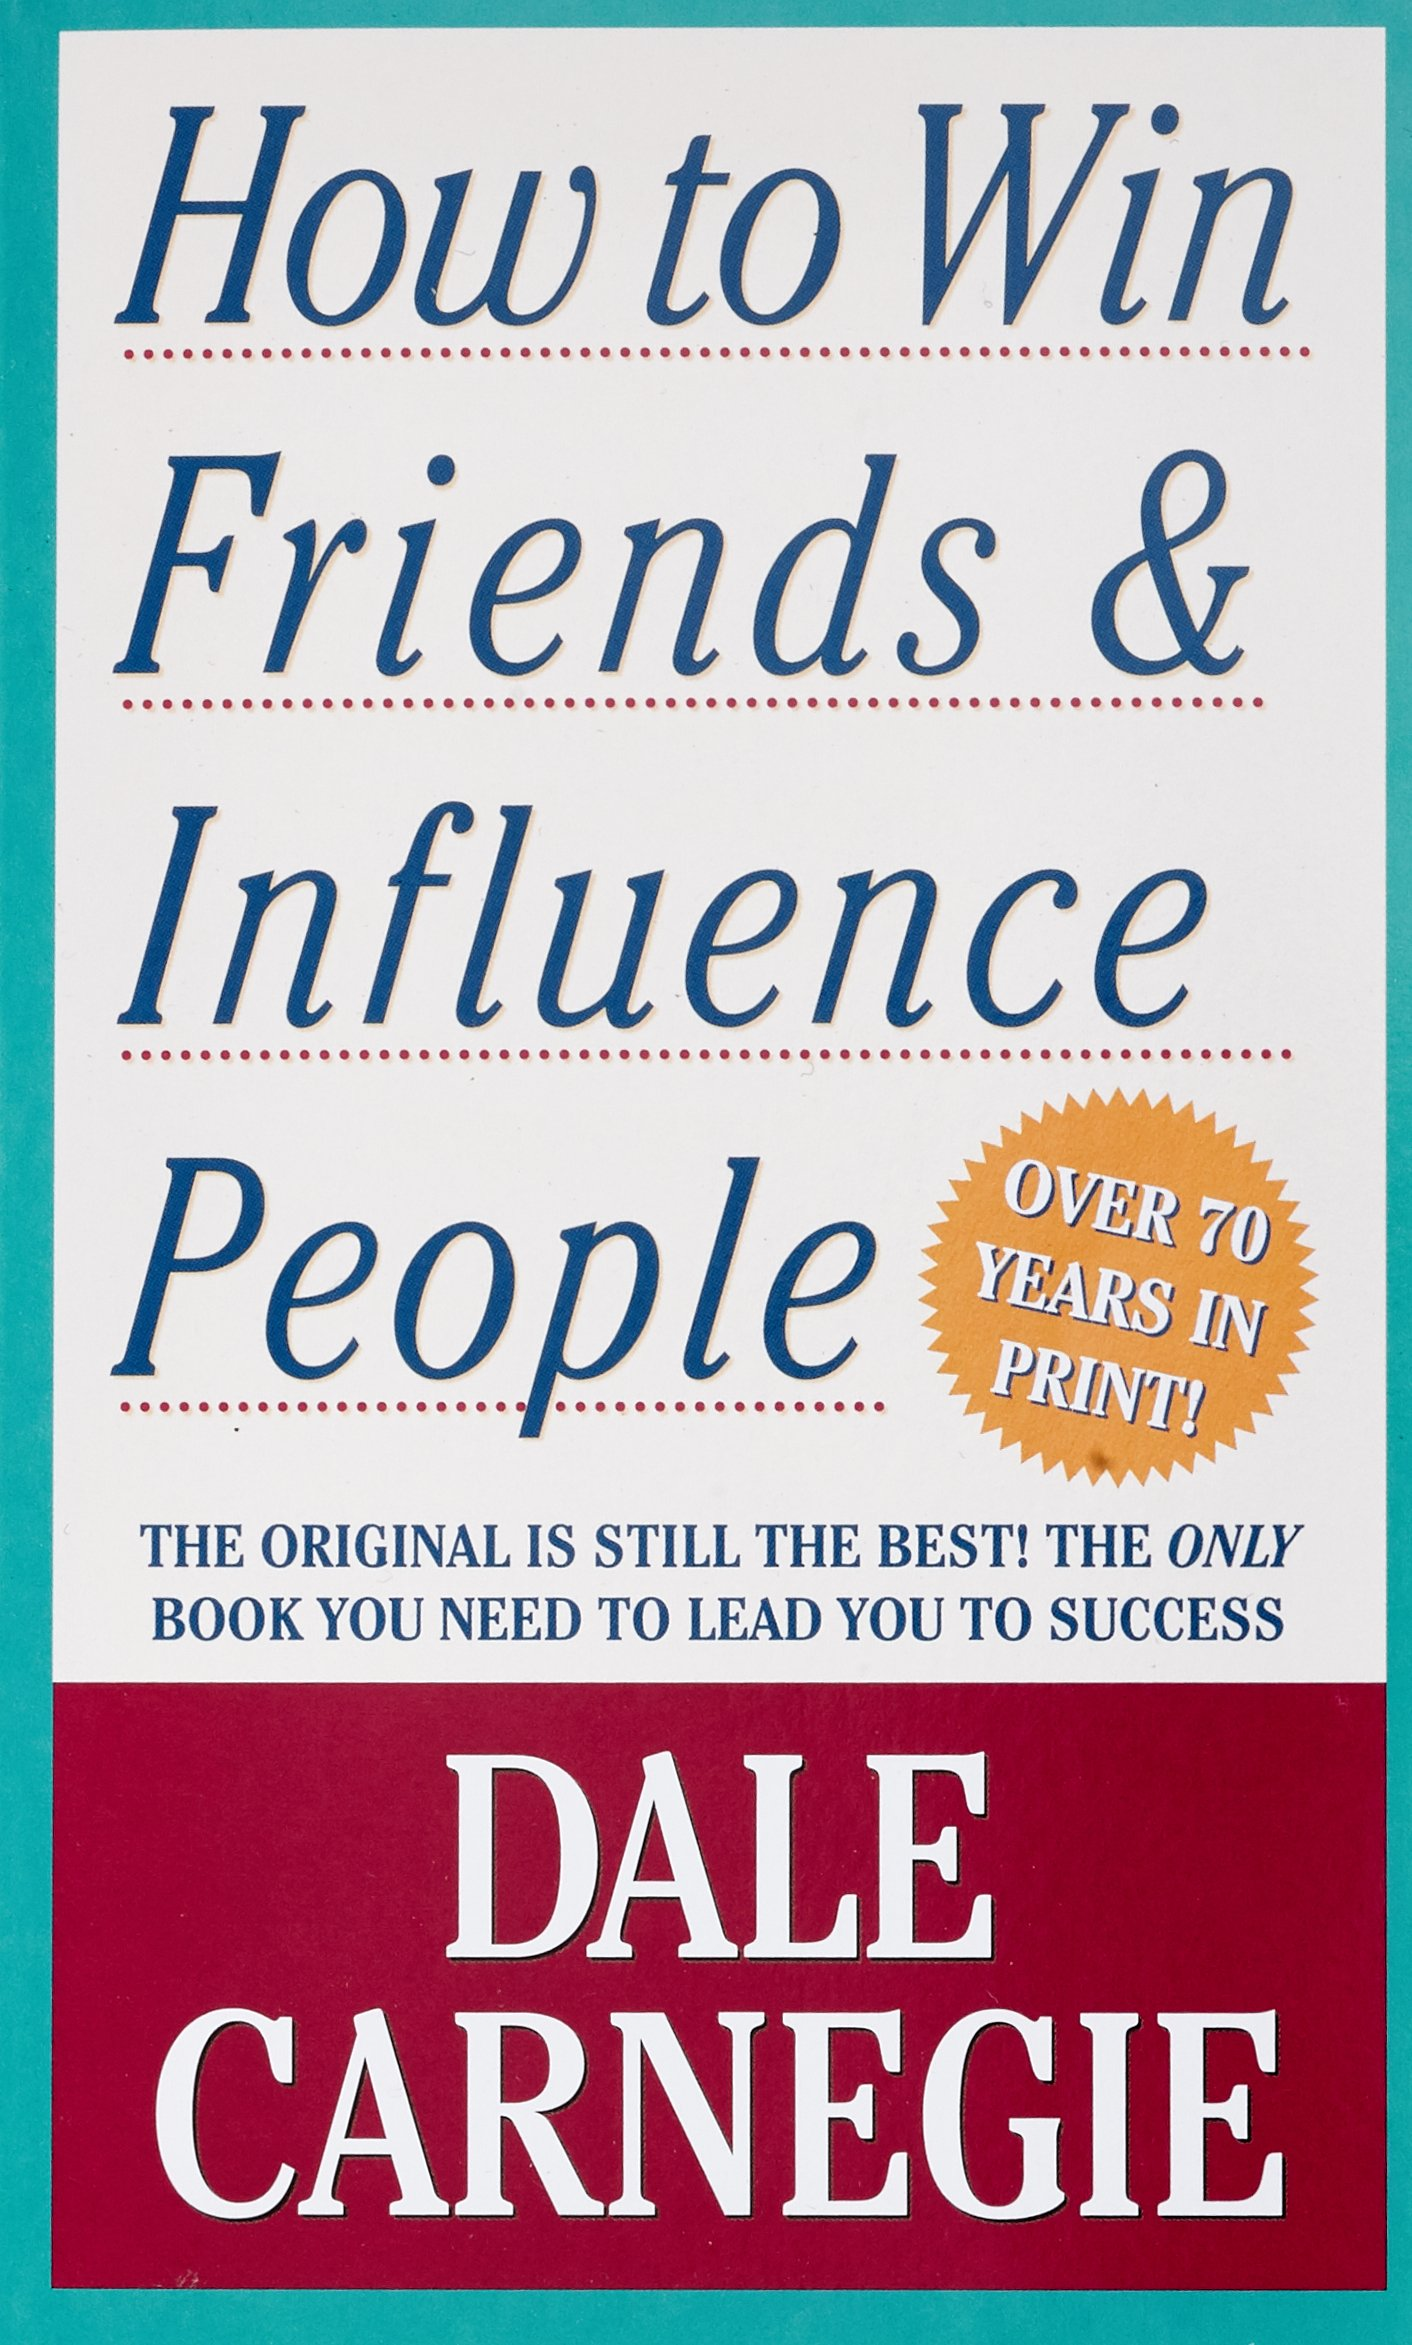 How to Win Friends & Influence People Mass Market Paperback – Apr 27 2010